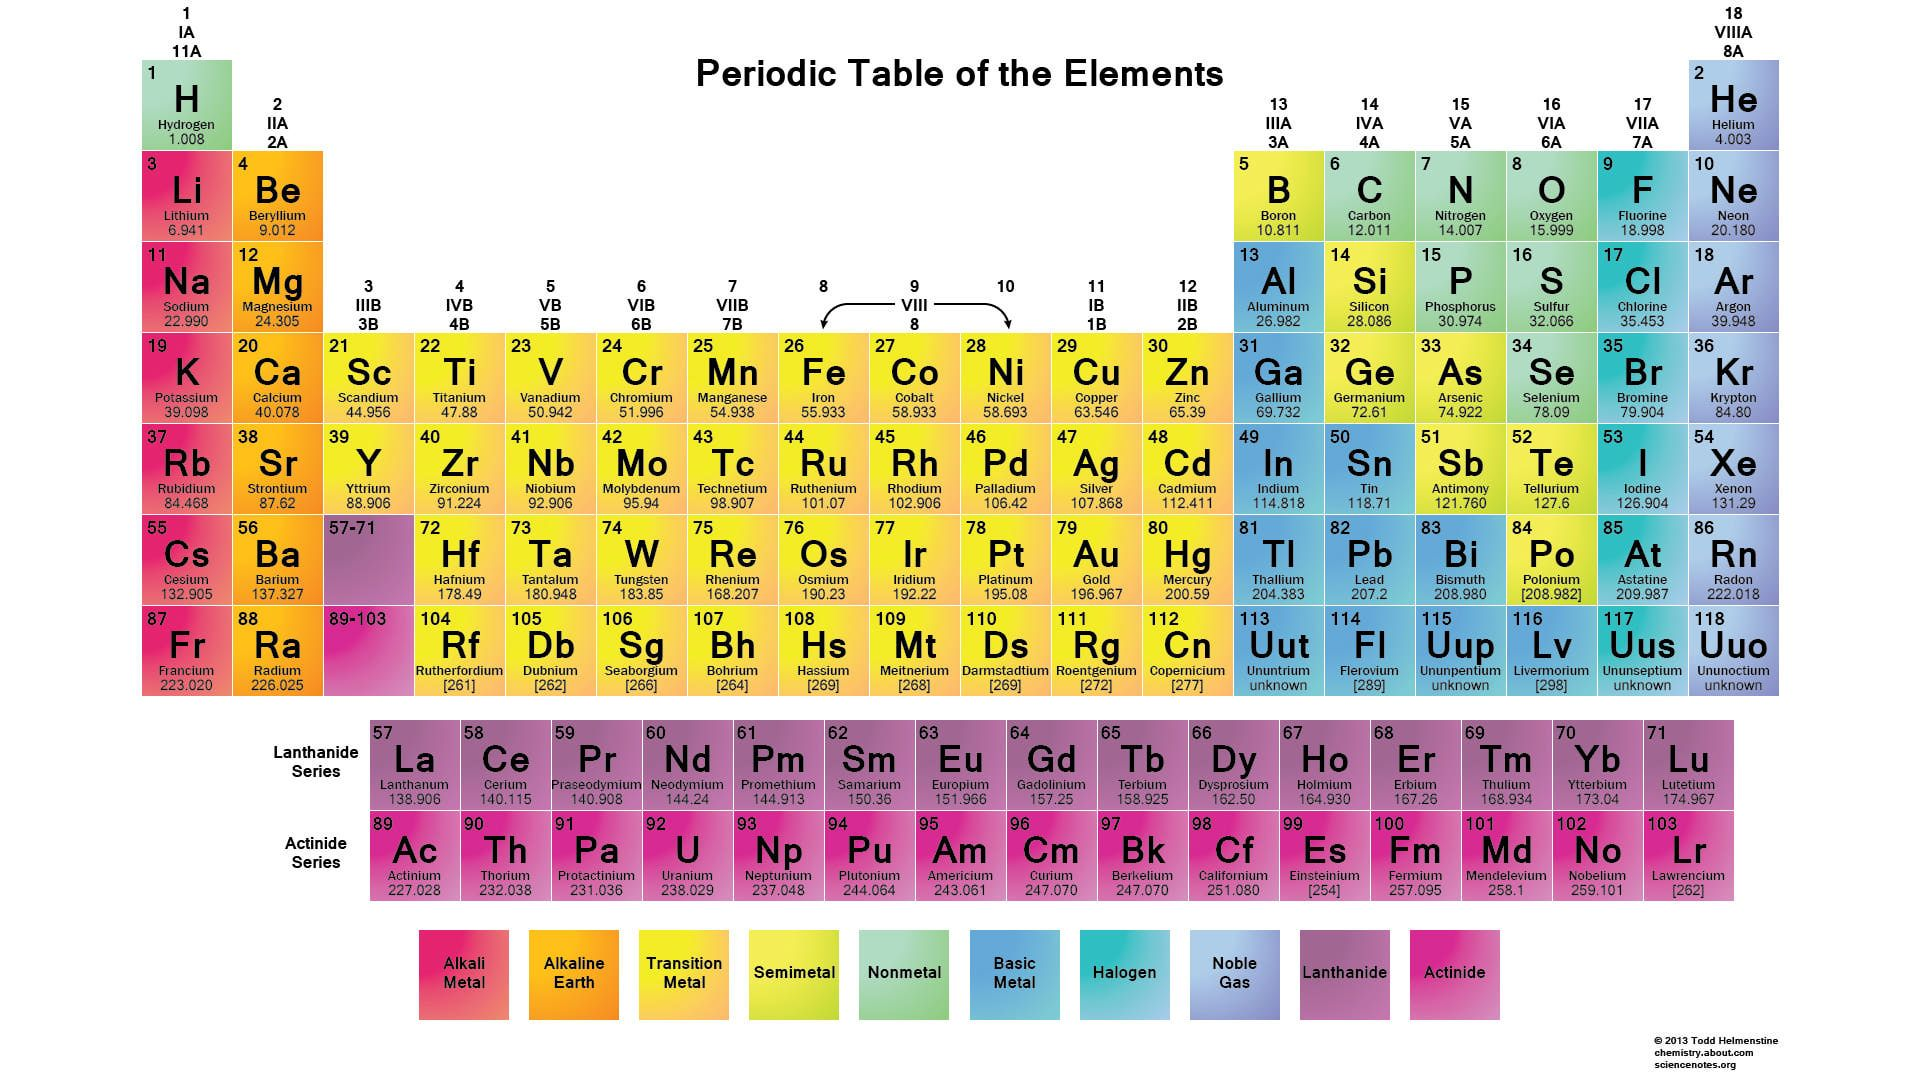 Really Nice Color Coded Periodic Tables. High Resolution Images, Made With  An Aspect Ratio That Re Sizes Well. Black, White U0026 Transparent Backgrounds  For ...